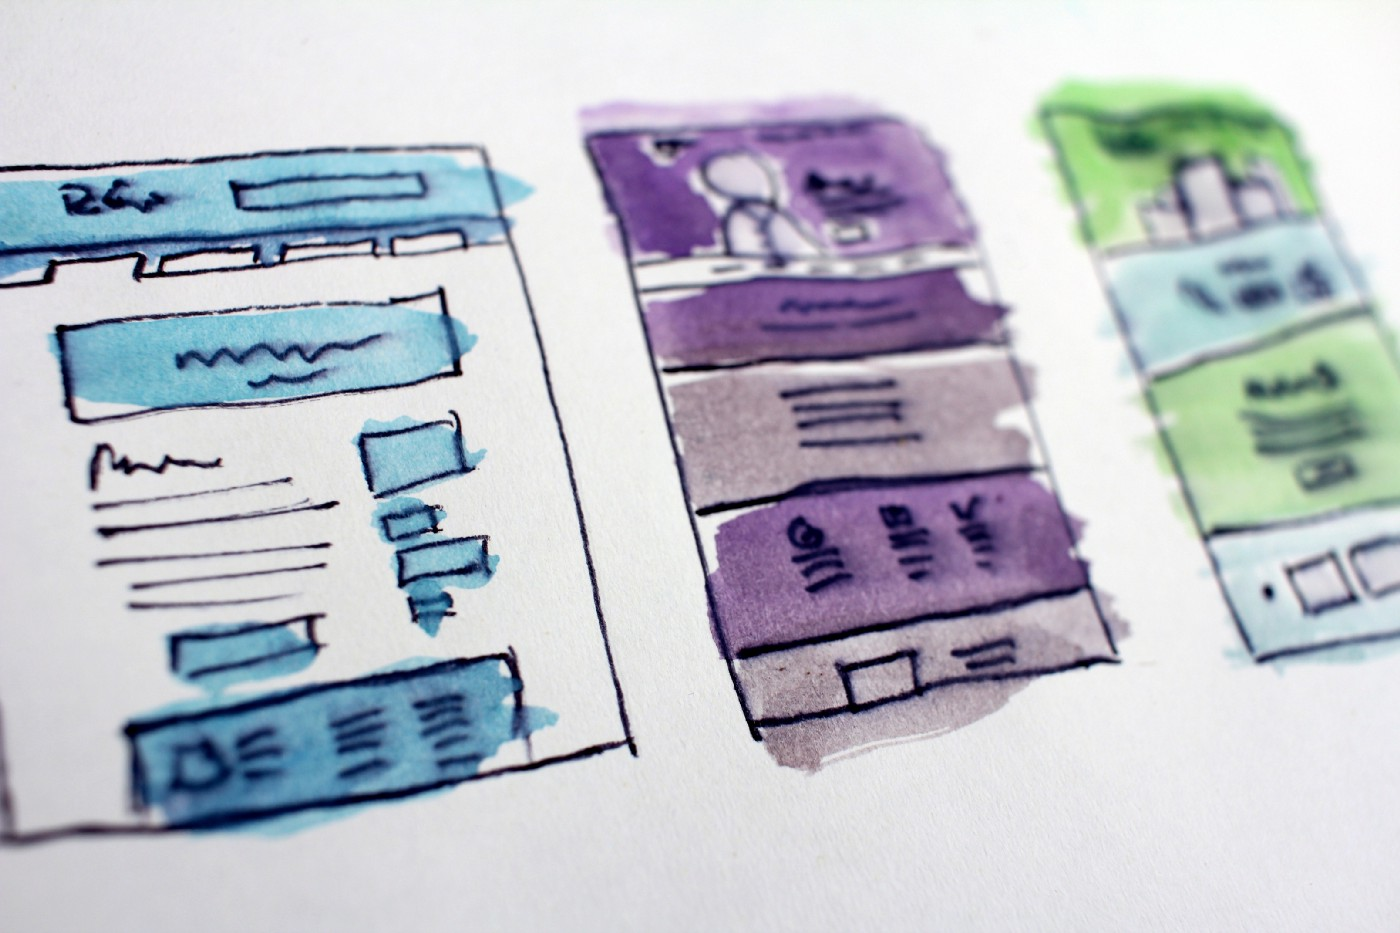 Hand-drawn mockups of various UI designs.